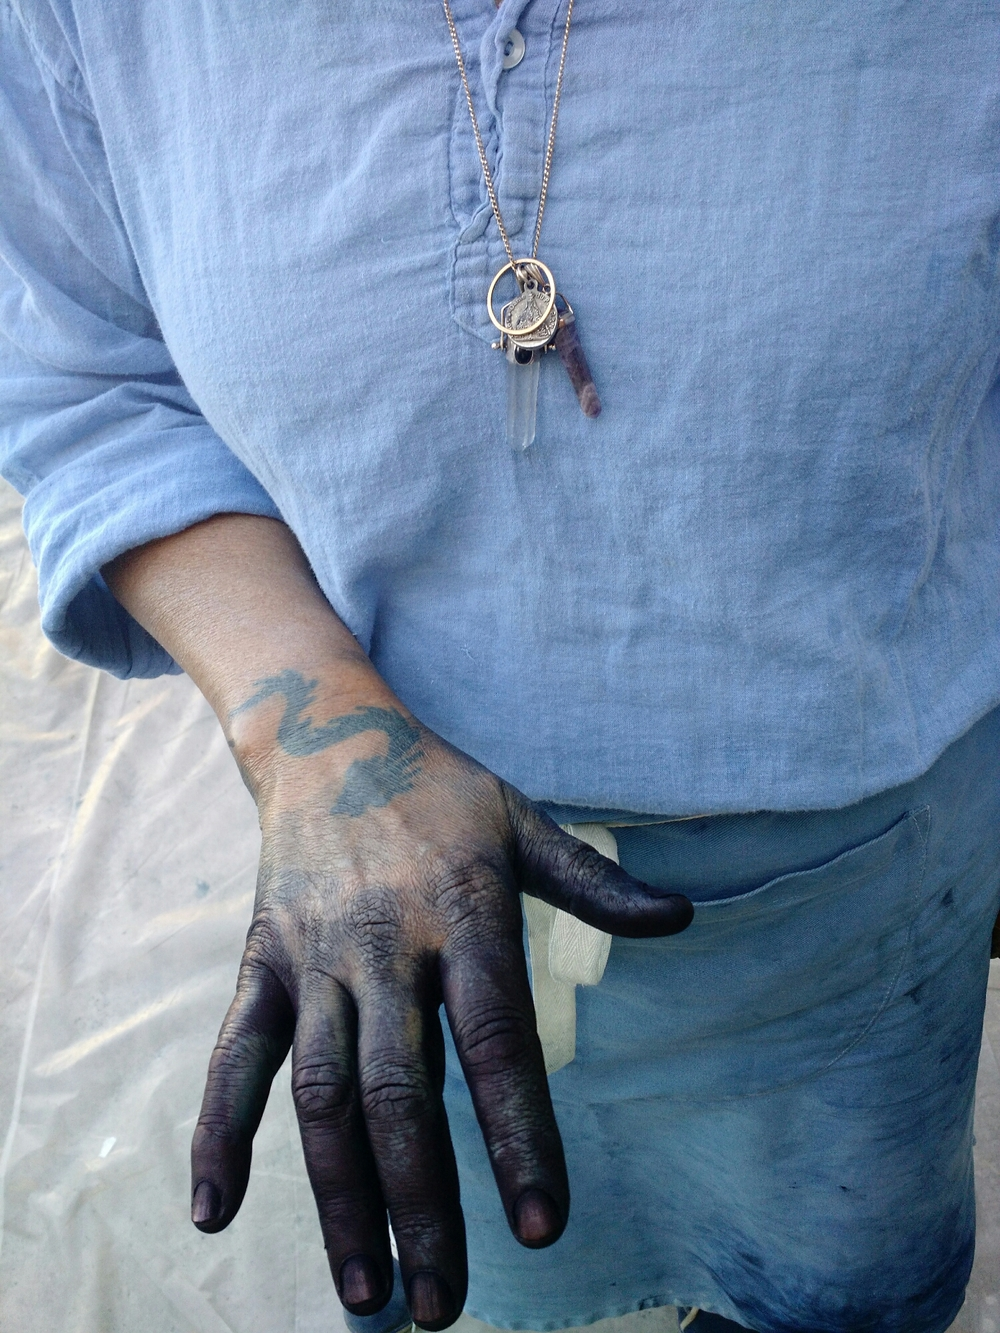 Denise Lambert's beautiful blue hand. A true artist's hand.